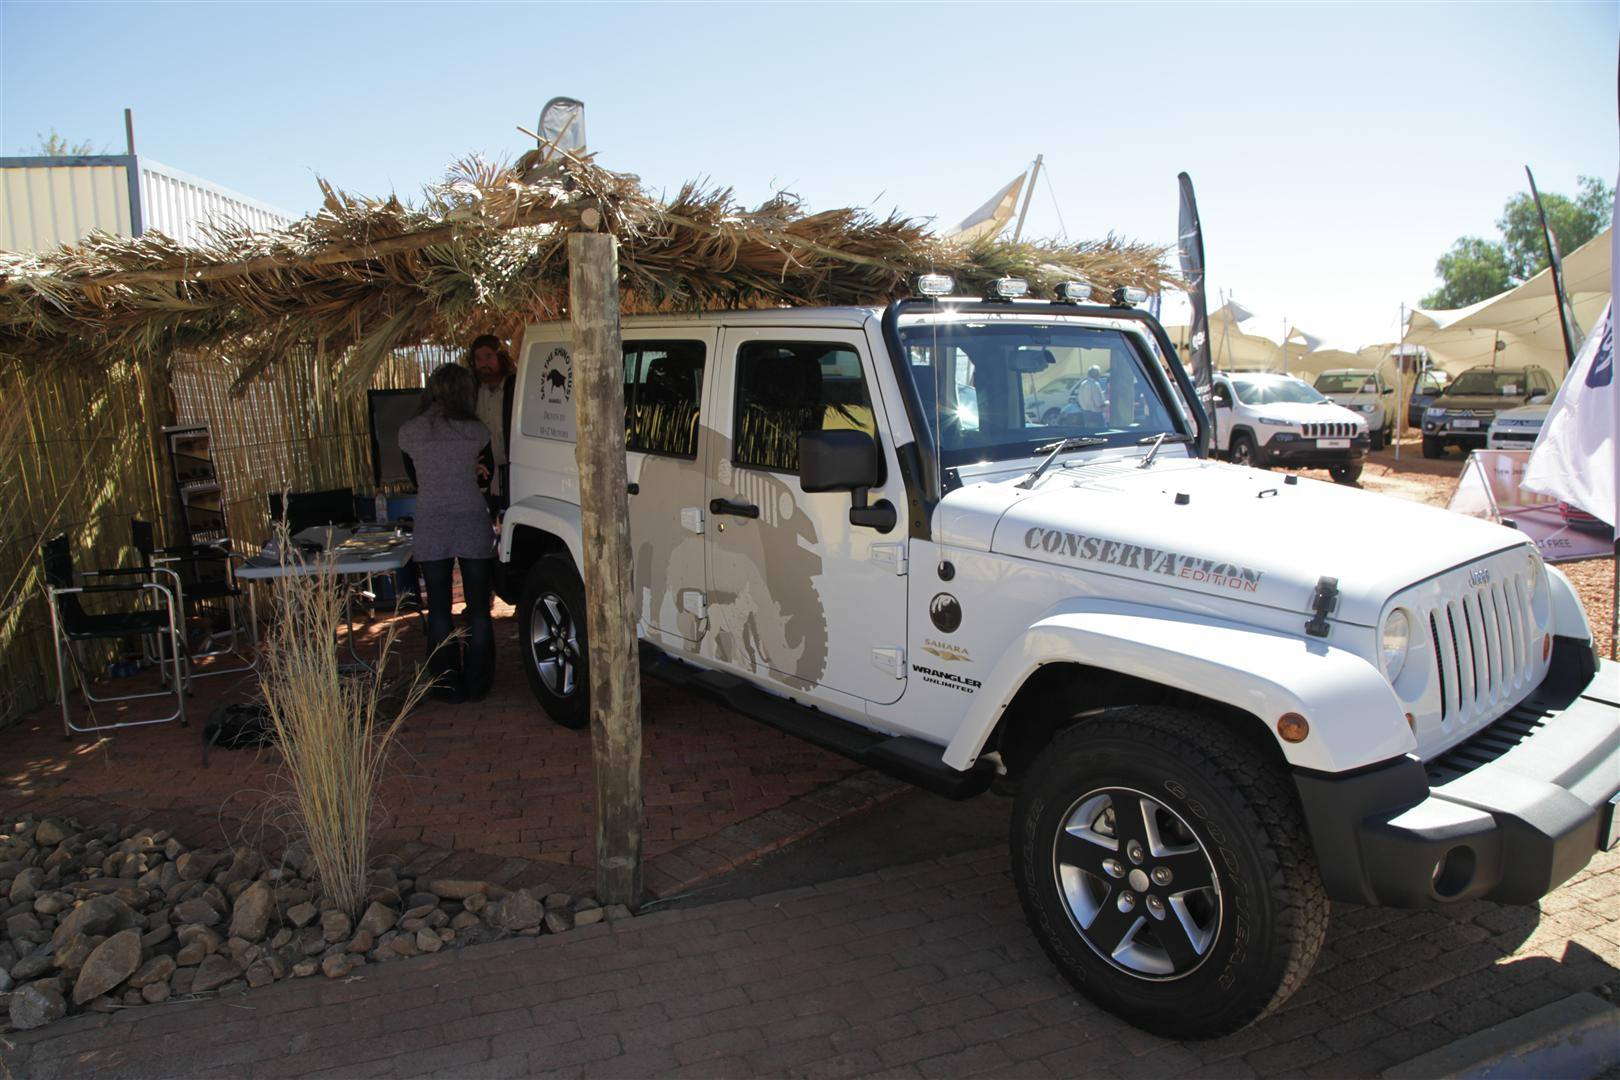 Best in show: Motorshow: M + Z. (Photo courtesy of Namibia Tourism Expo 2014 FB page)